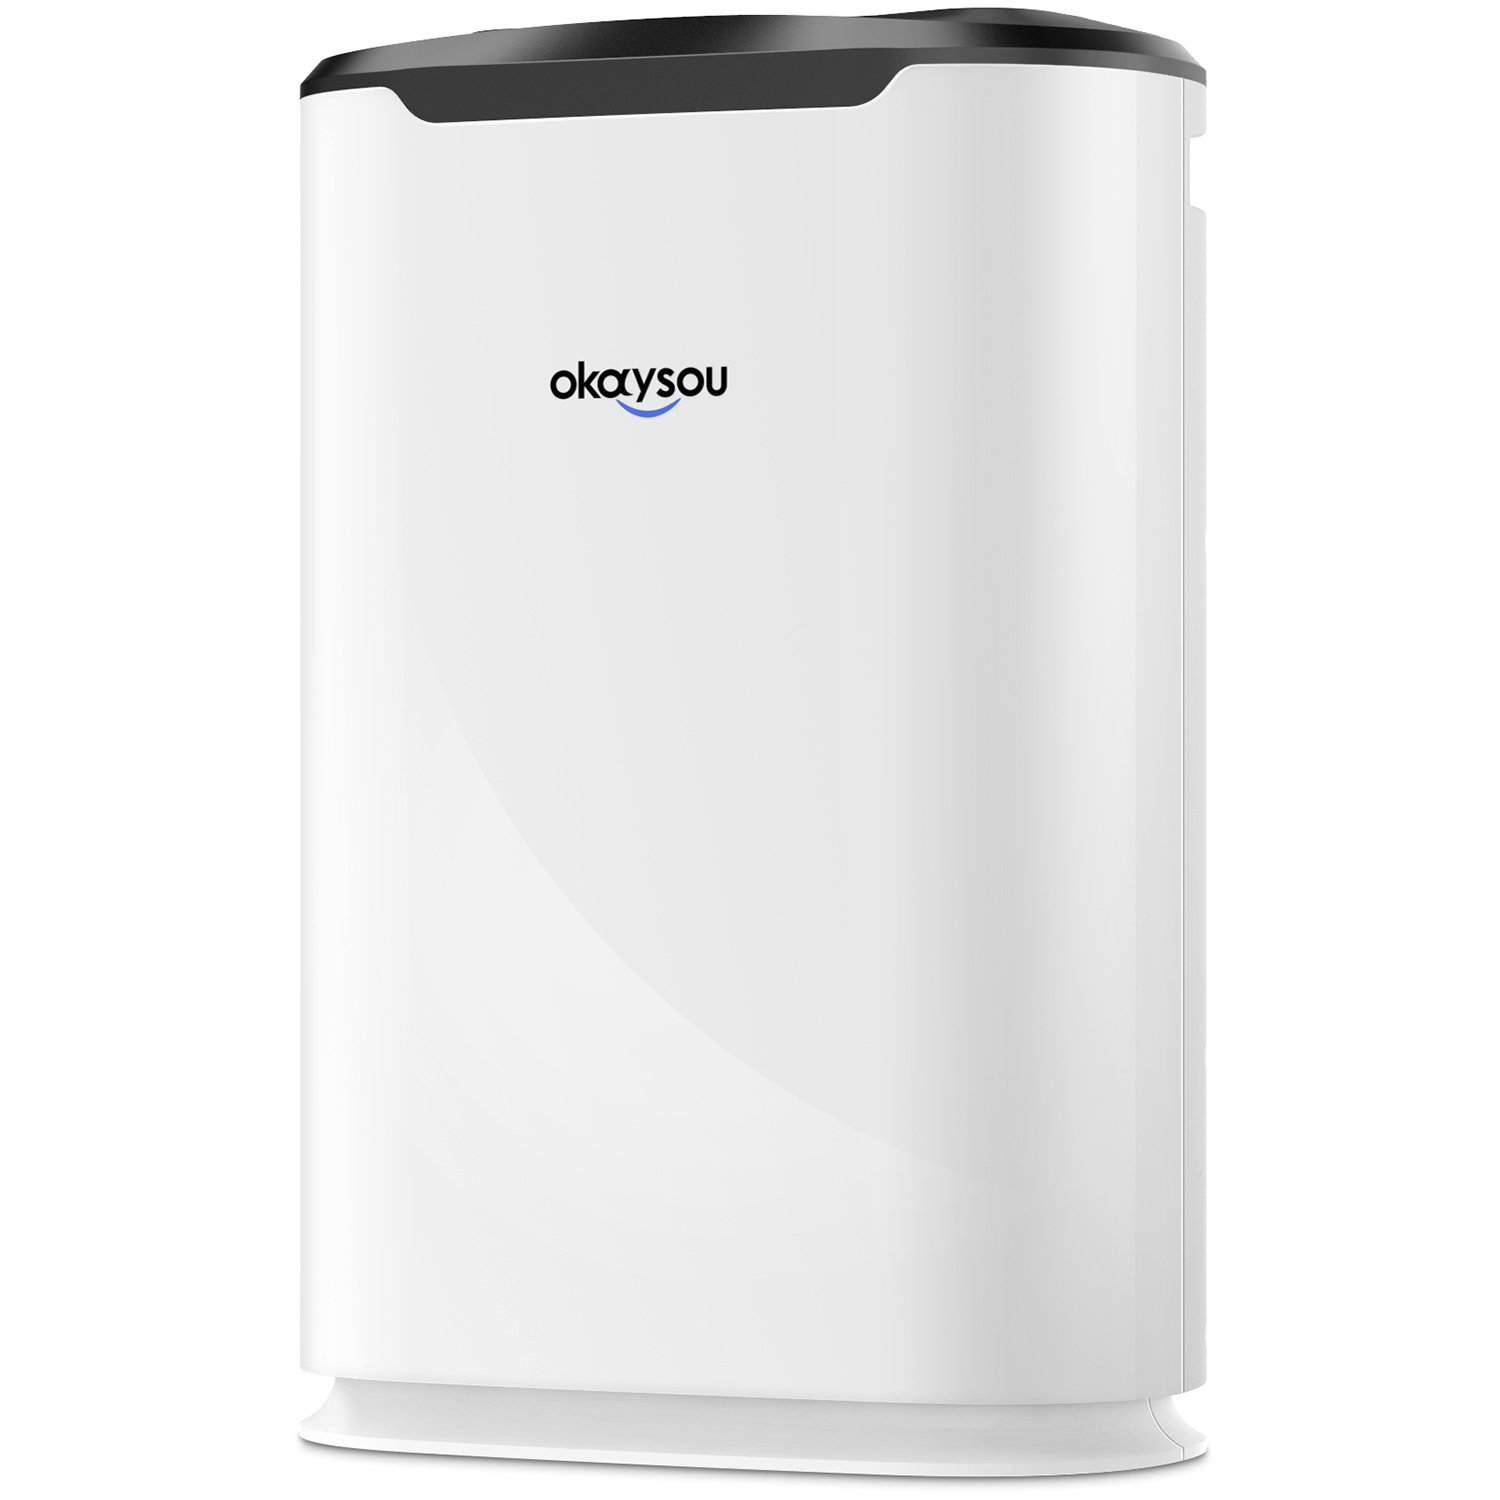 Why We Choose Okaysou AirMax8L Air Purifier?